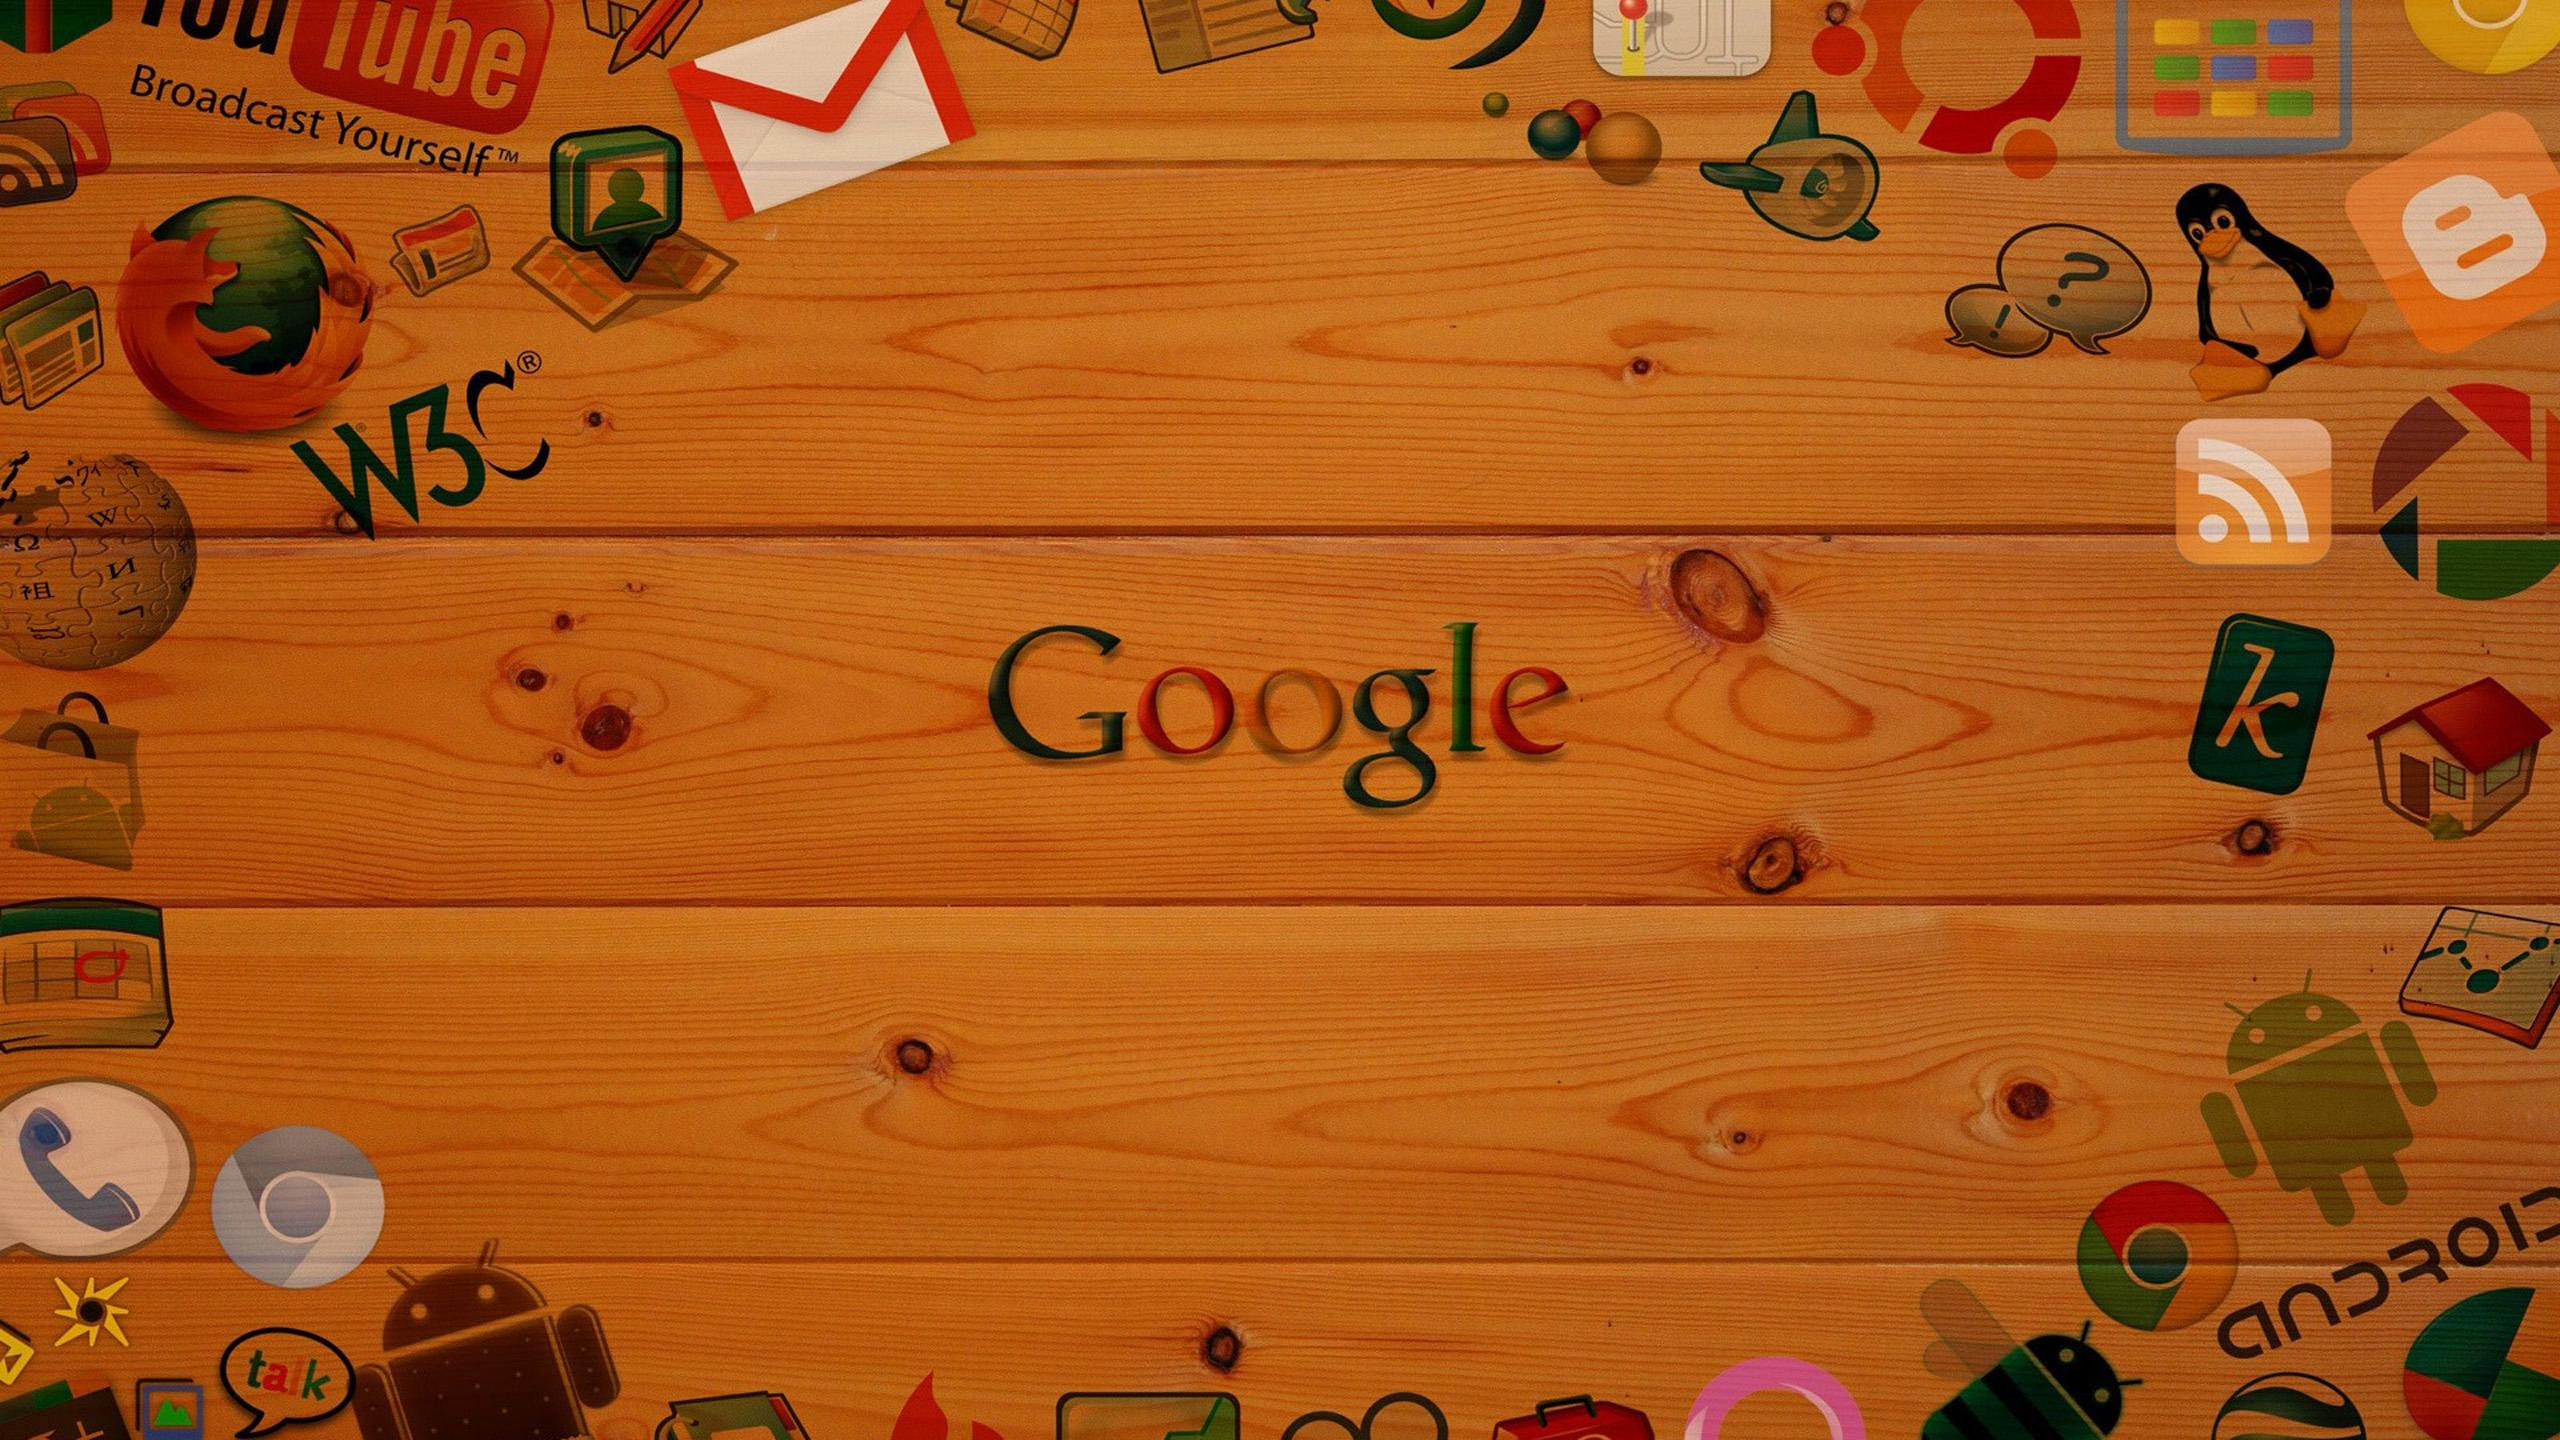 Gmail Wallpaper Hd   50 Group Wallpapers 2560x1440